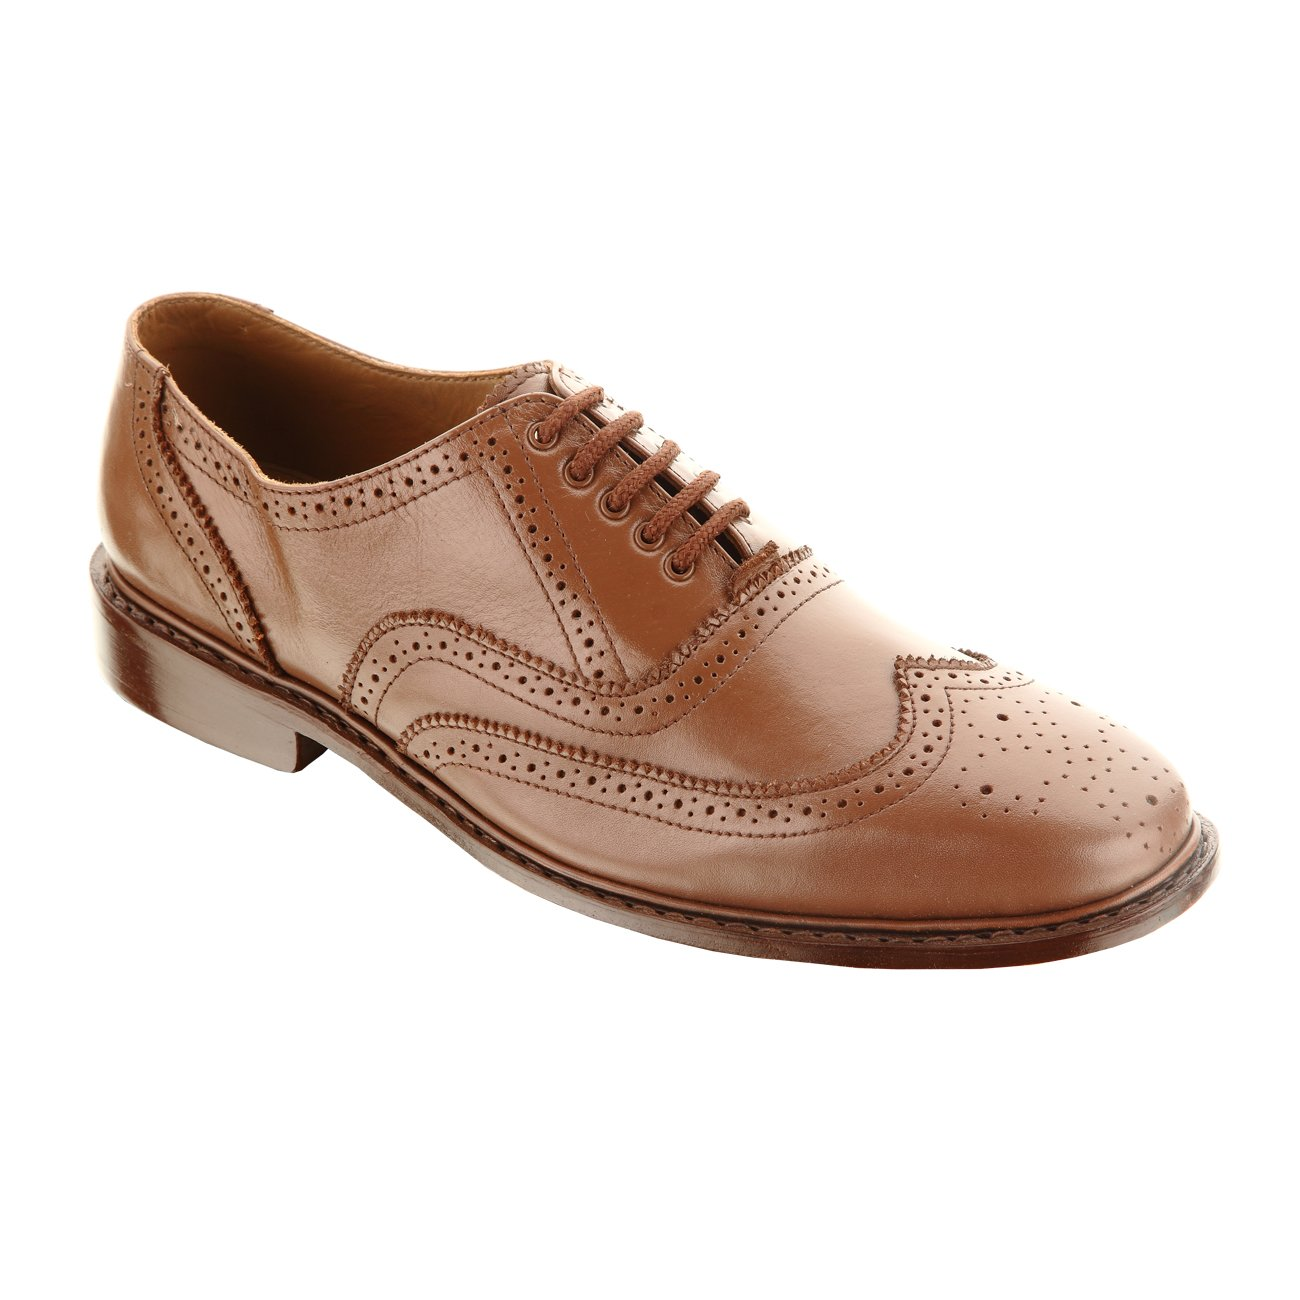 Damen Frost Handmade Vollo Mens Leather Shoes, Wing-tip Oxford Classic Design, Color Brown, Size US11